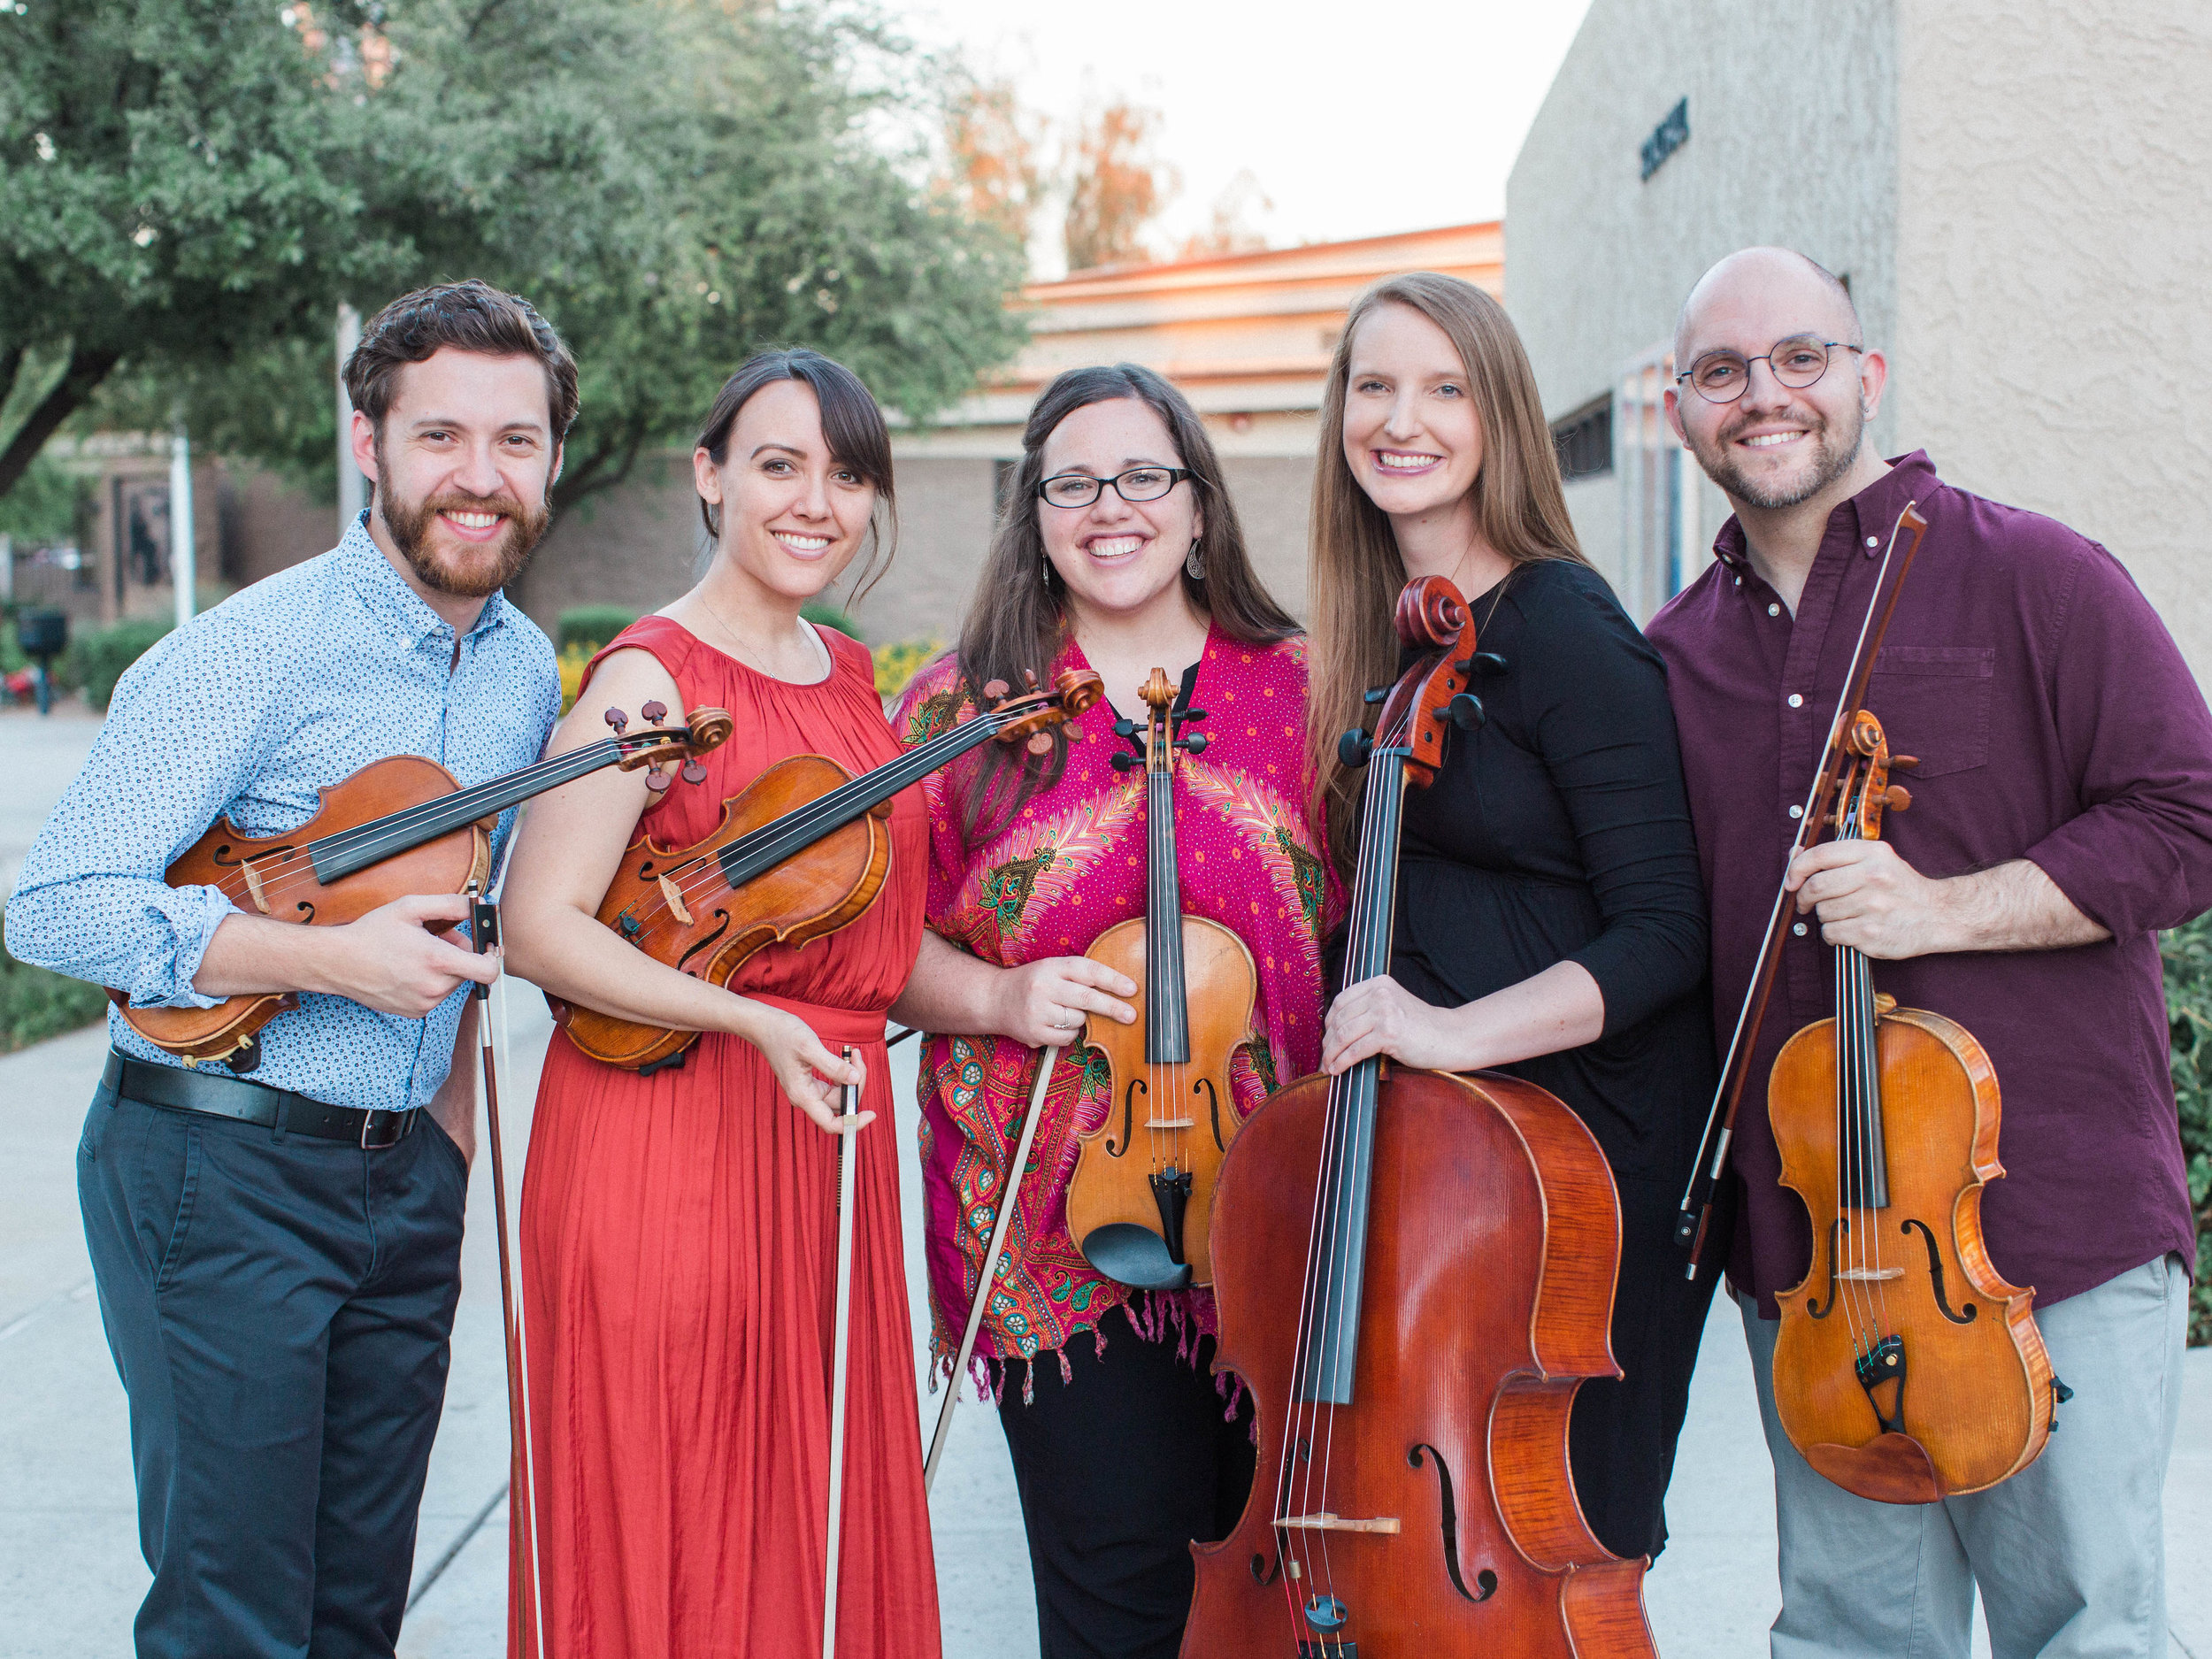 Camp Faculty! Violinist Taylor Morris and the members of the Tetra String Quartet: Chandra Susilo, Heidi Wright, Jenna Dalbey, and Louis Privitera